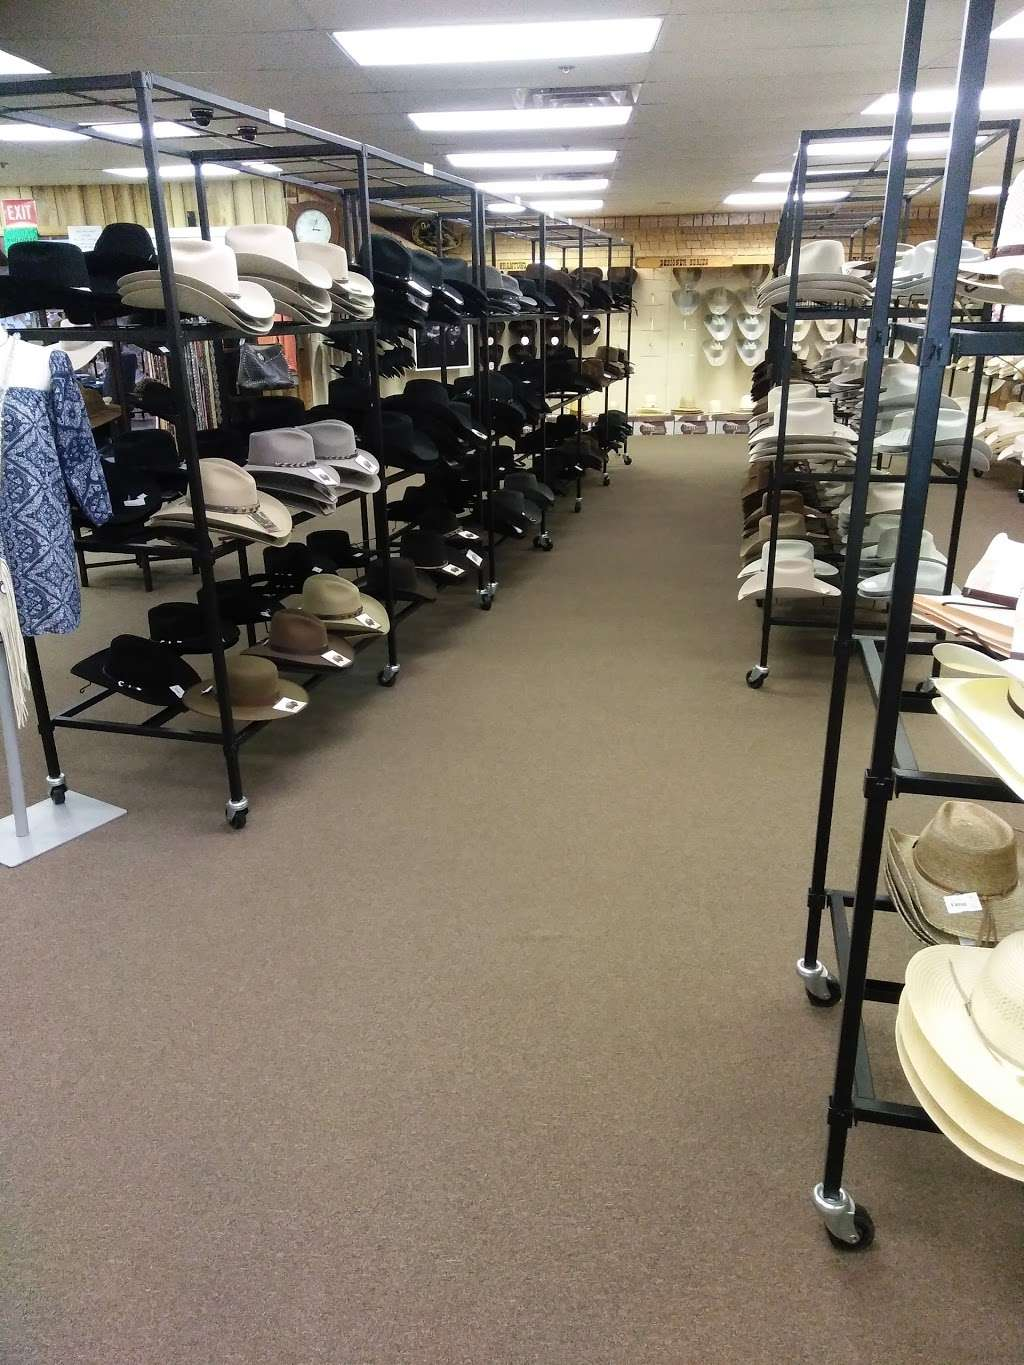 Stetson Hat Co Outlet Store - clothing store    Photo 4 of 10   Address: 3601 S Leonard Rd, St Joseph, MO 64503, USA   Phone: (816) 233-3286